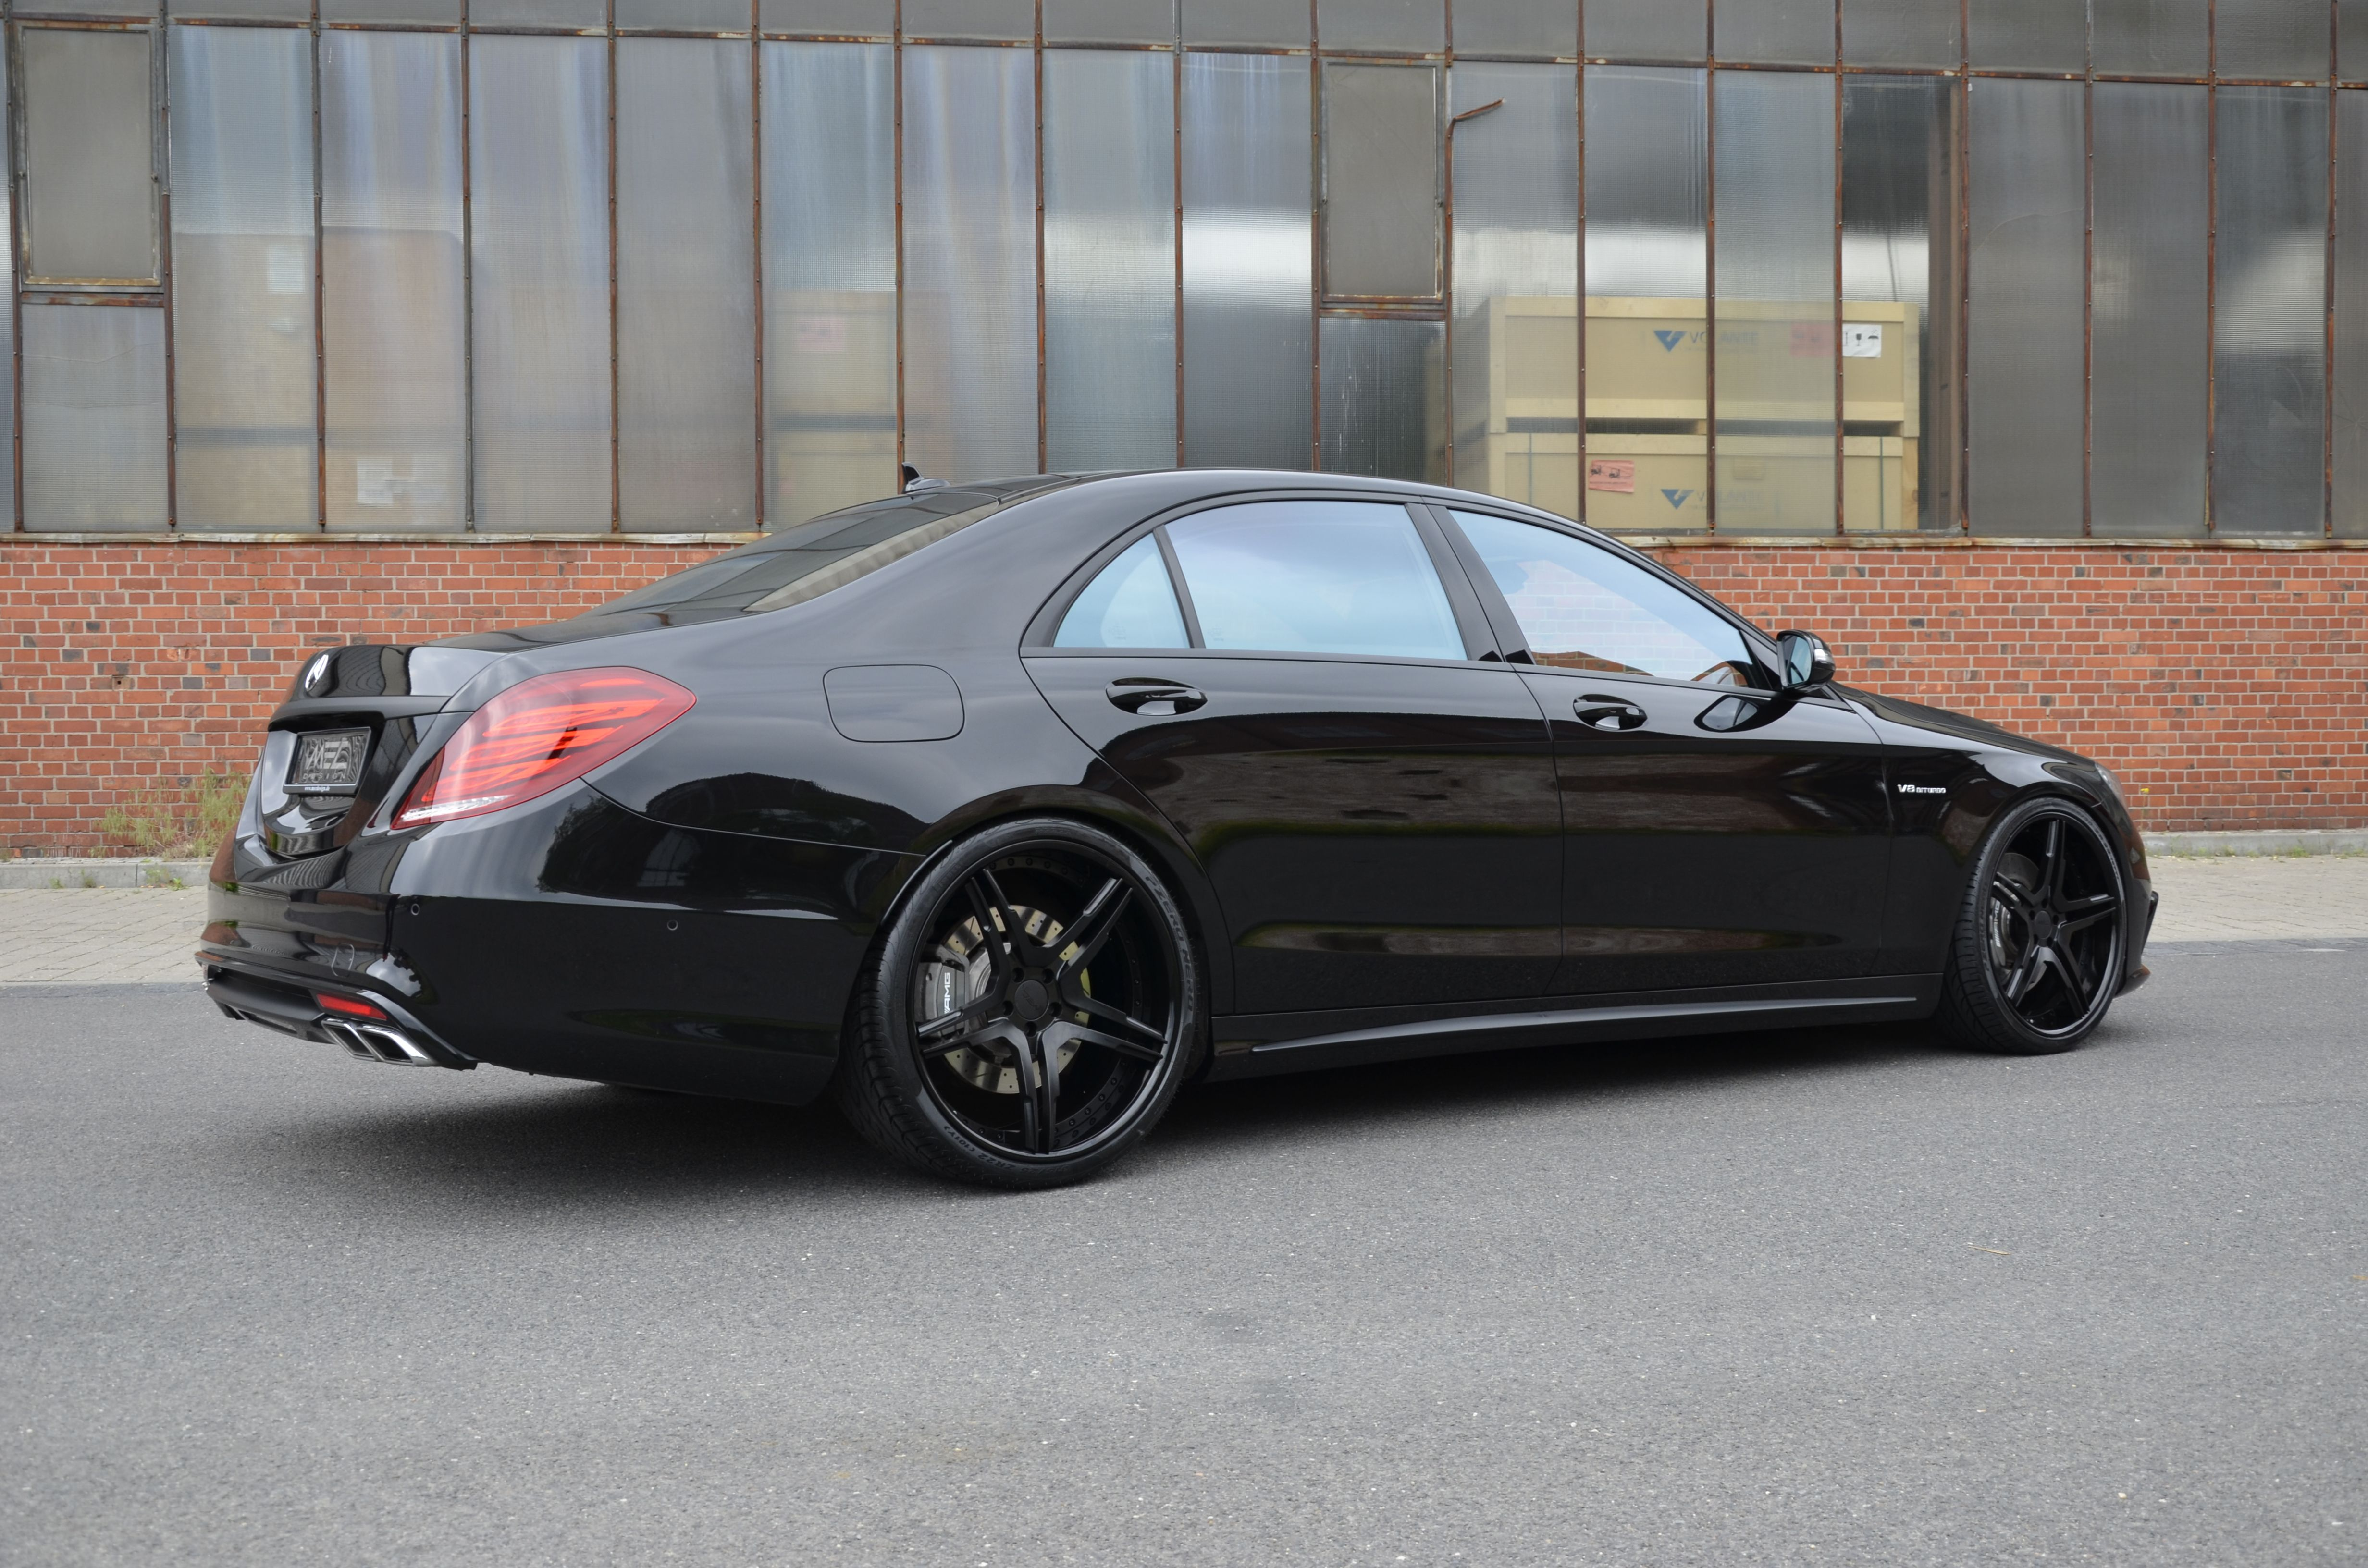 Mercedes Benz S 63 Amg W 222 Cly Yet Bad